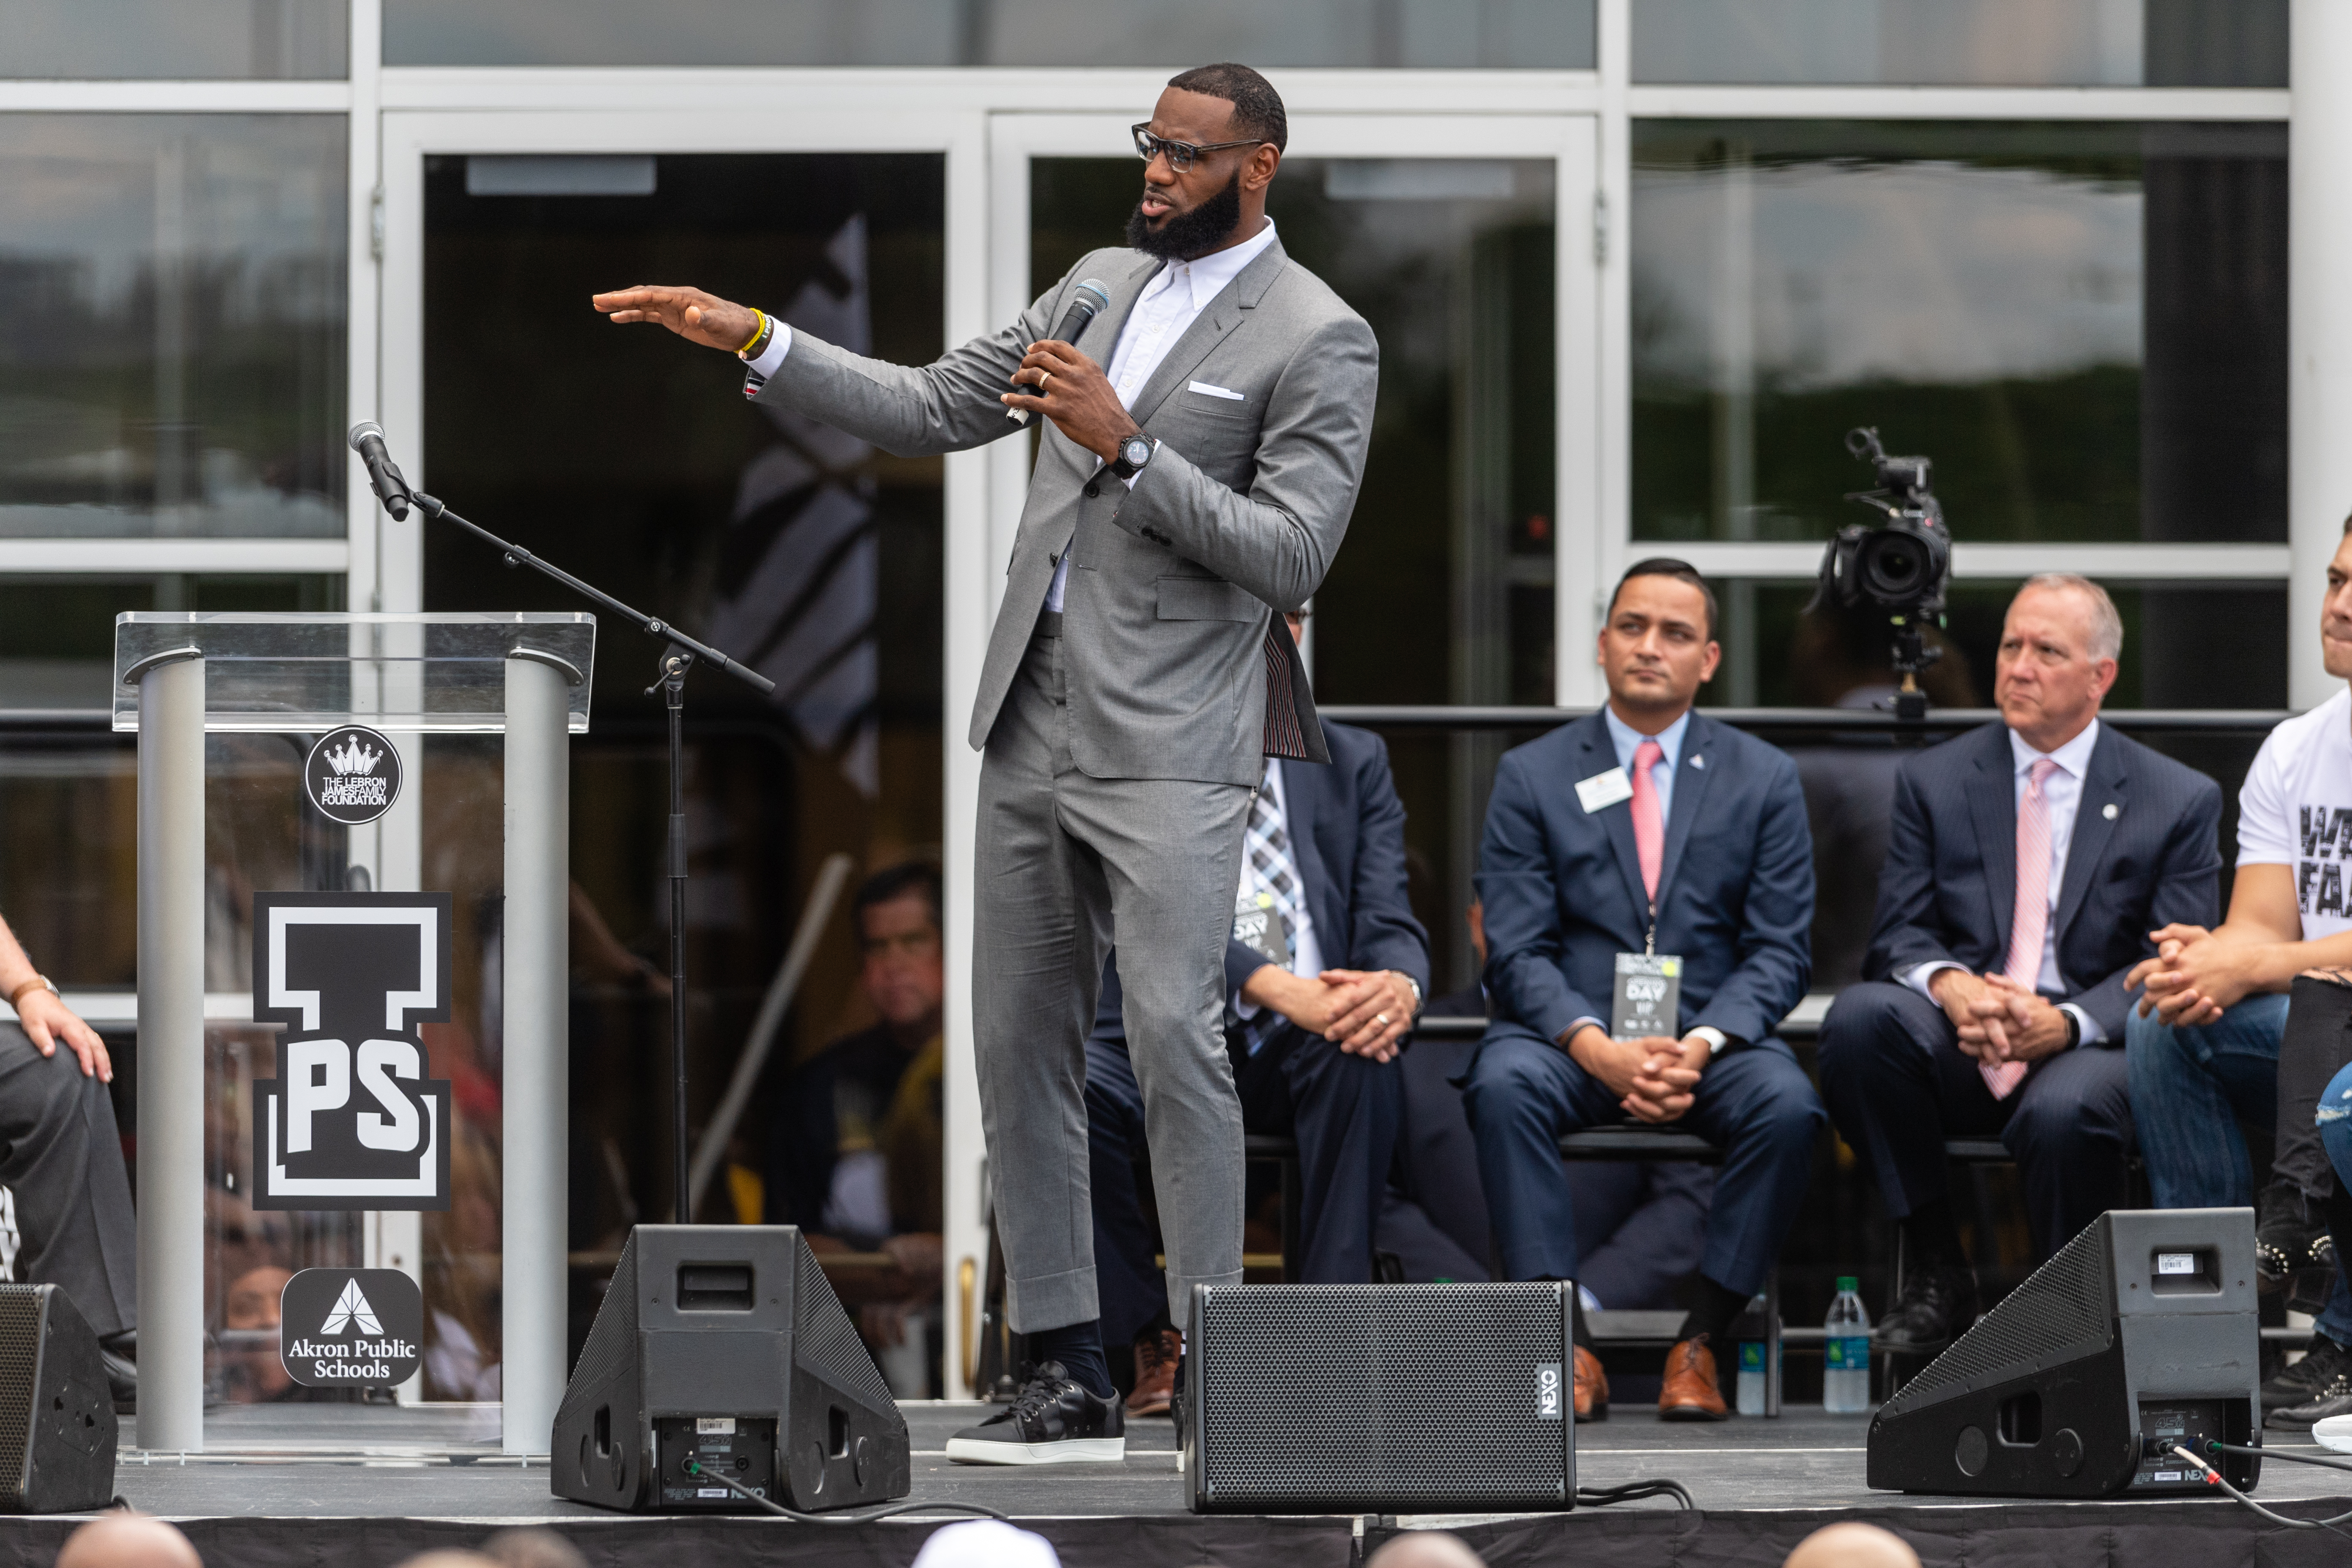 Inside LeBron James's New $8 Million Public School, Where Students Get Free Bikes, Meals, and College Tuition